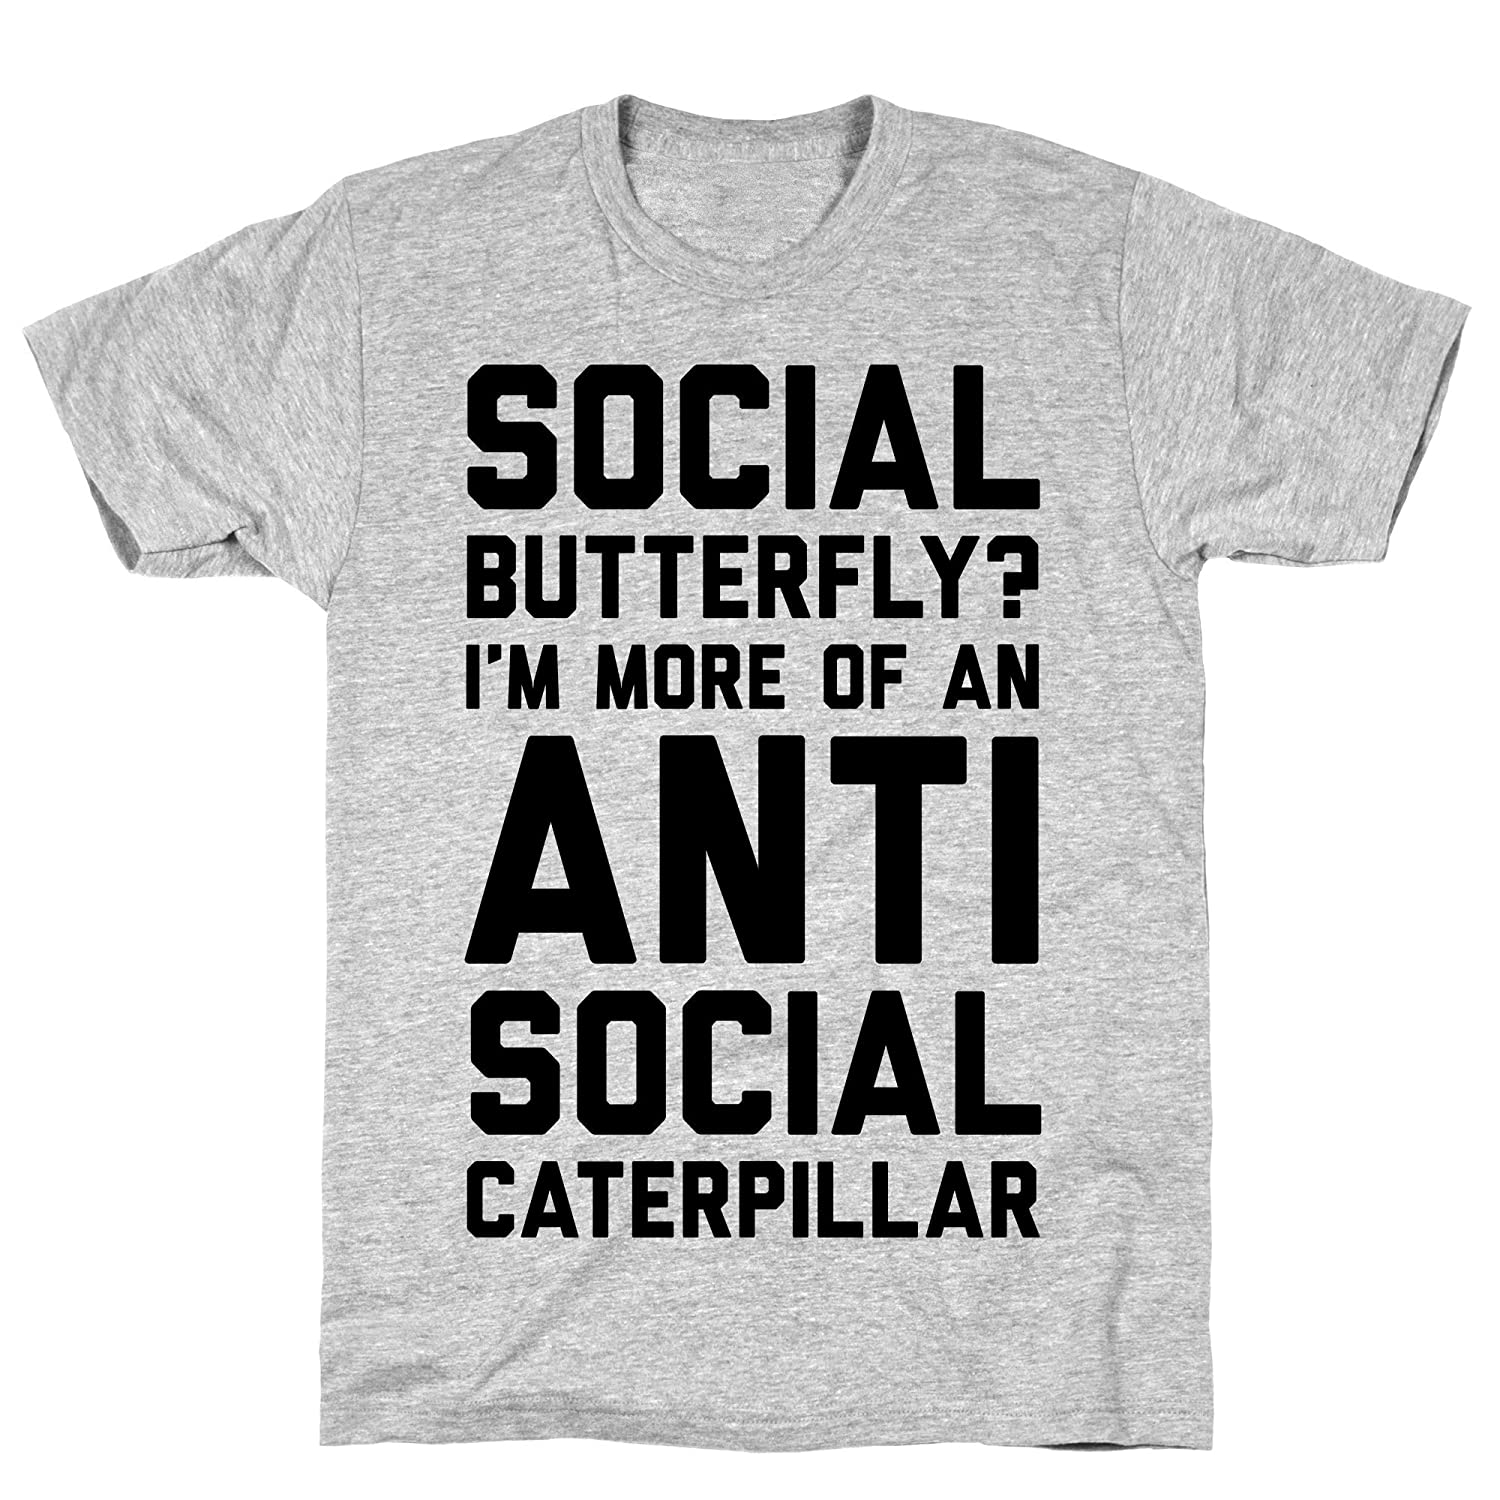 af6ef343d95f Amazon.com  LookHUMAN Social Butterfly I m More of an Antisocial Caterpillar  Athletic Gray Men s Cotton Tee  Clothing